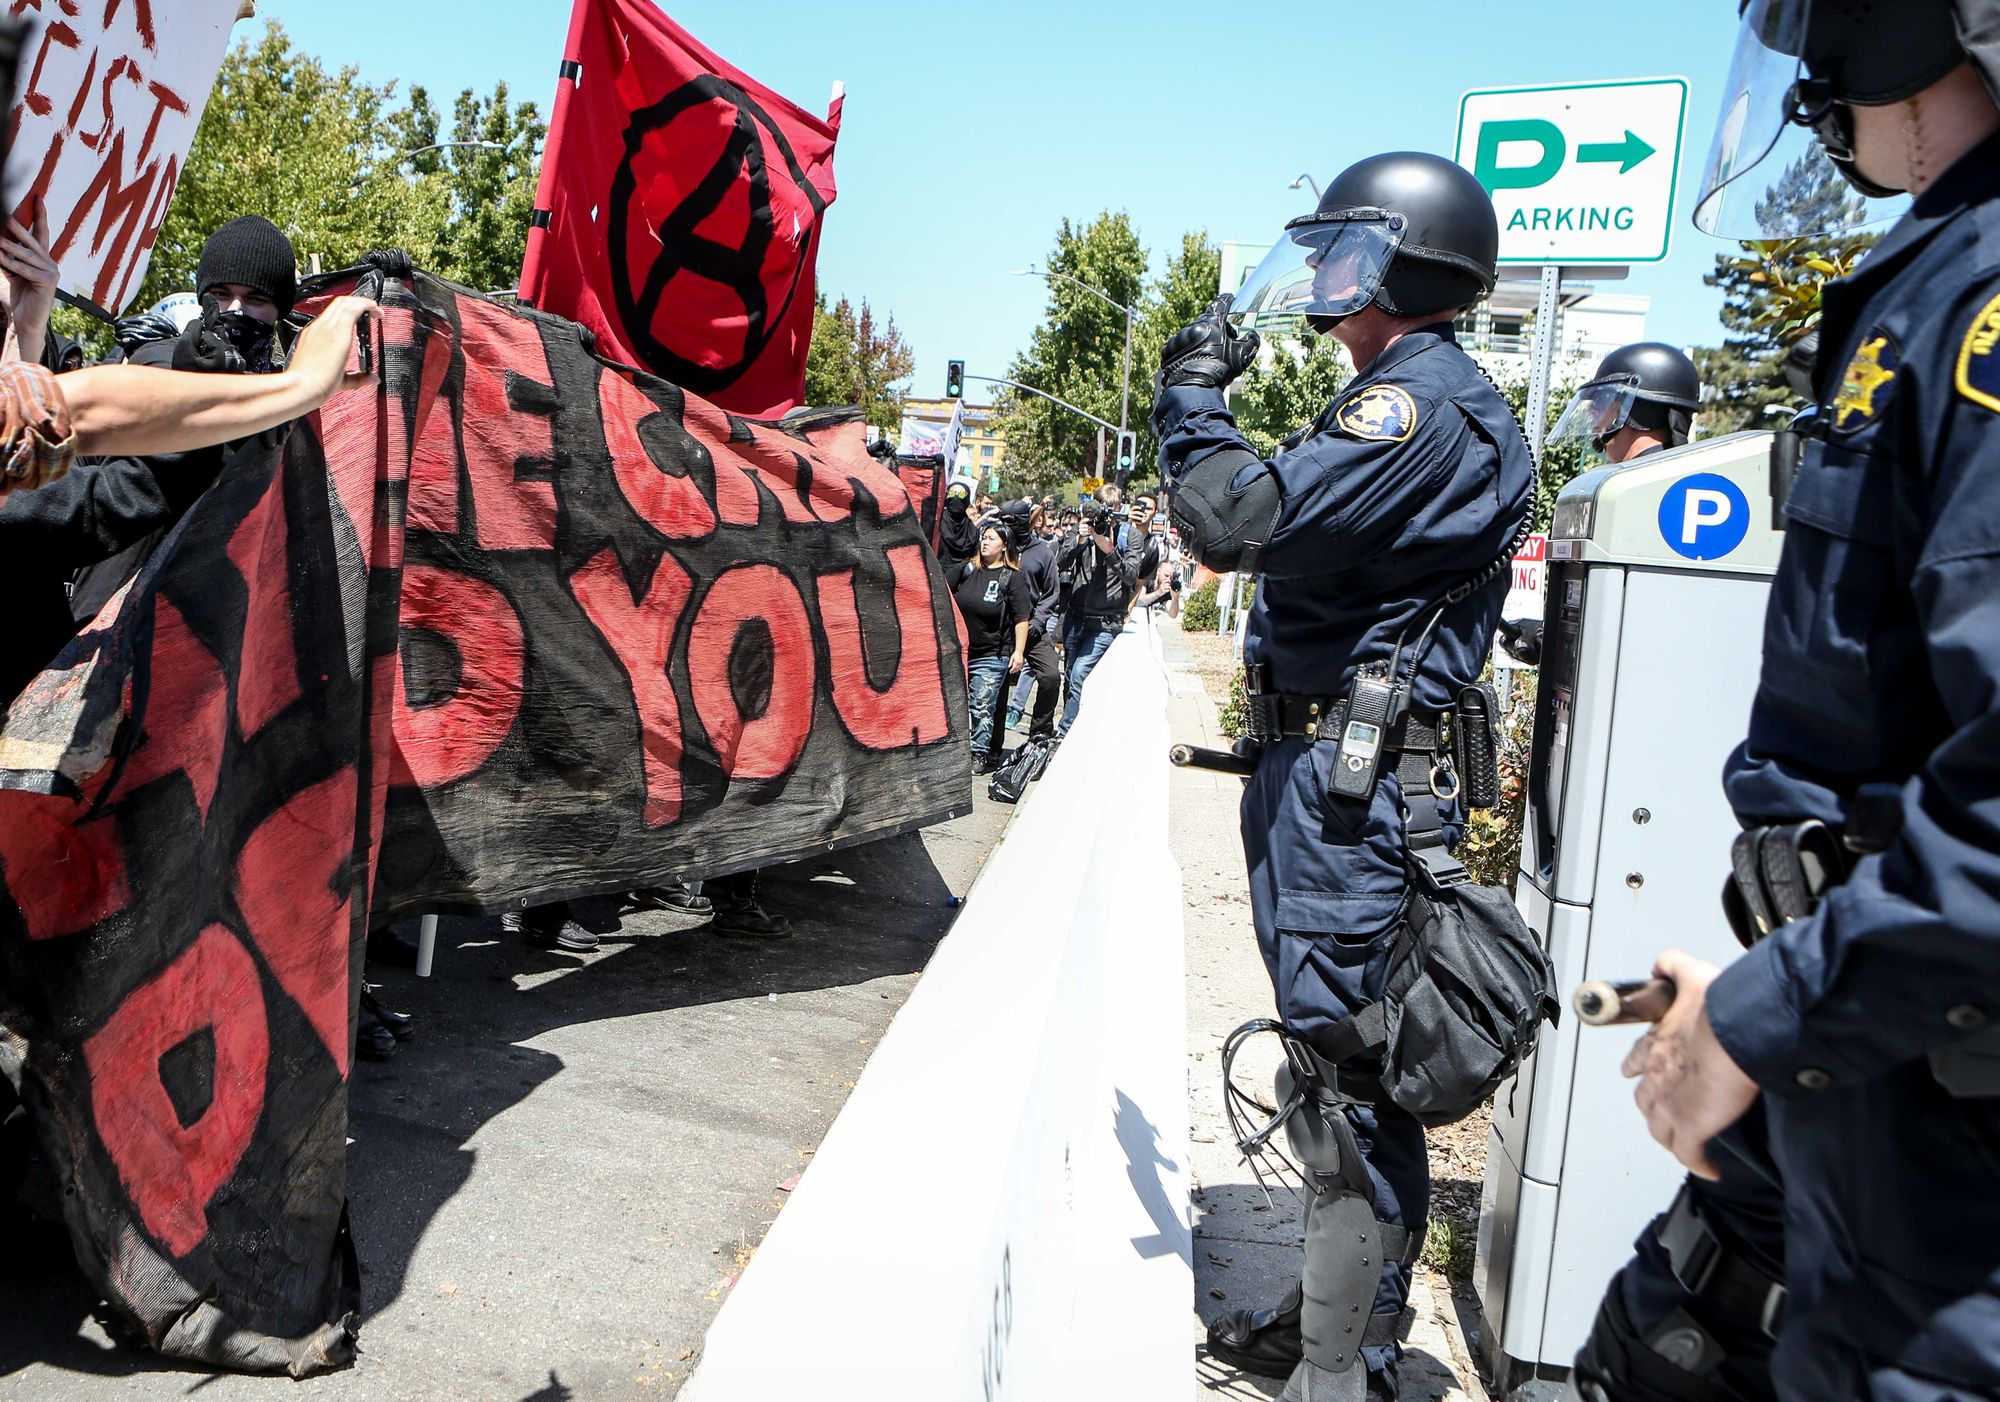 Les forces de l'ordre face aux manifestants antifascistes et cotnre-manifestants à Berkeley, en Californie.